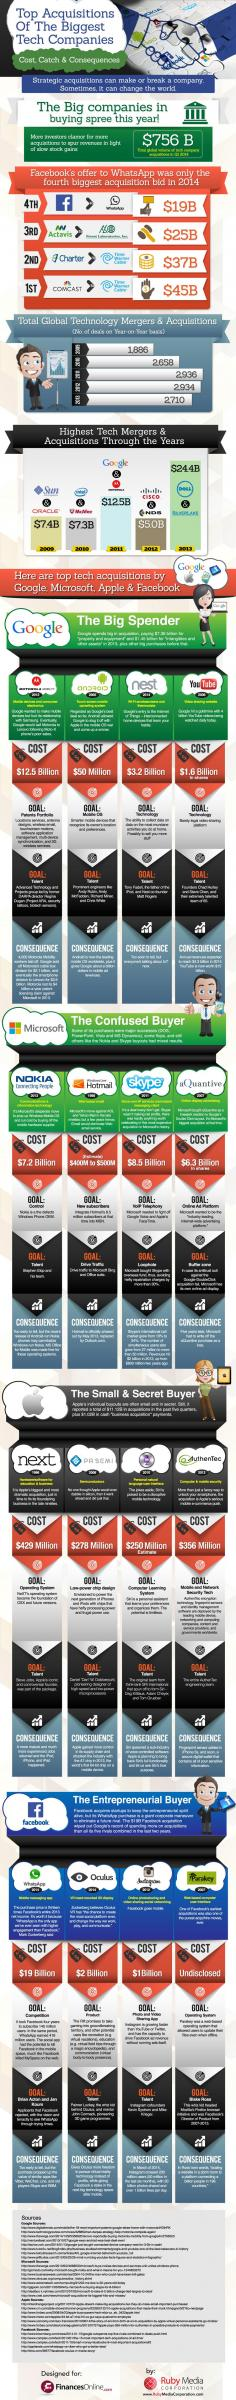 company-acquisitions-infographic_1.jpg